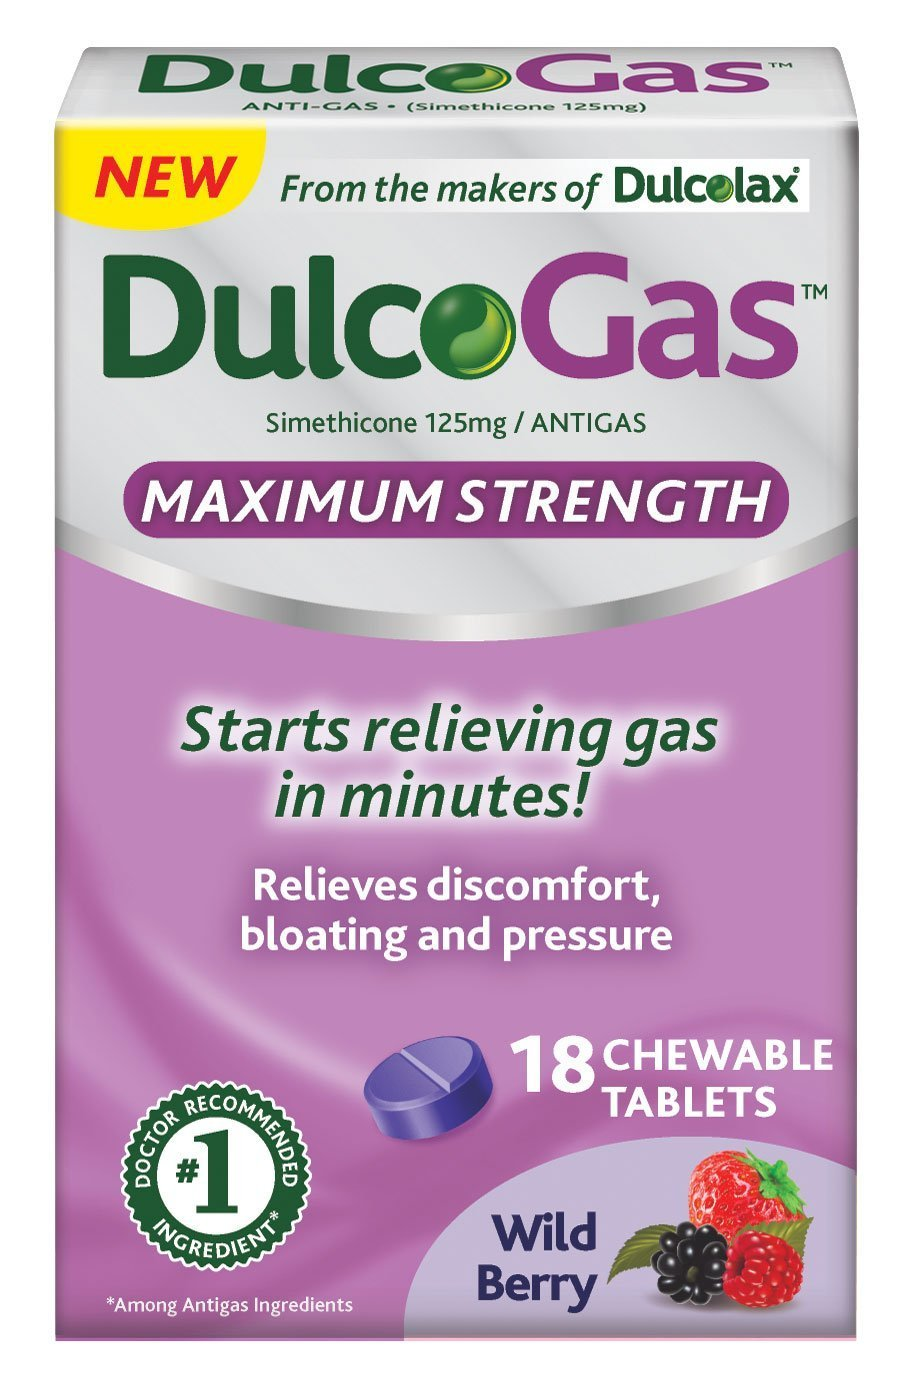 Dulcogas Maximum Strength Antigas Tablets, Wild Berry, 18 Count (pack of 2)